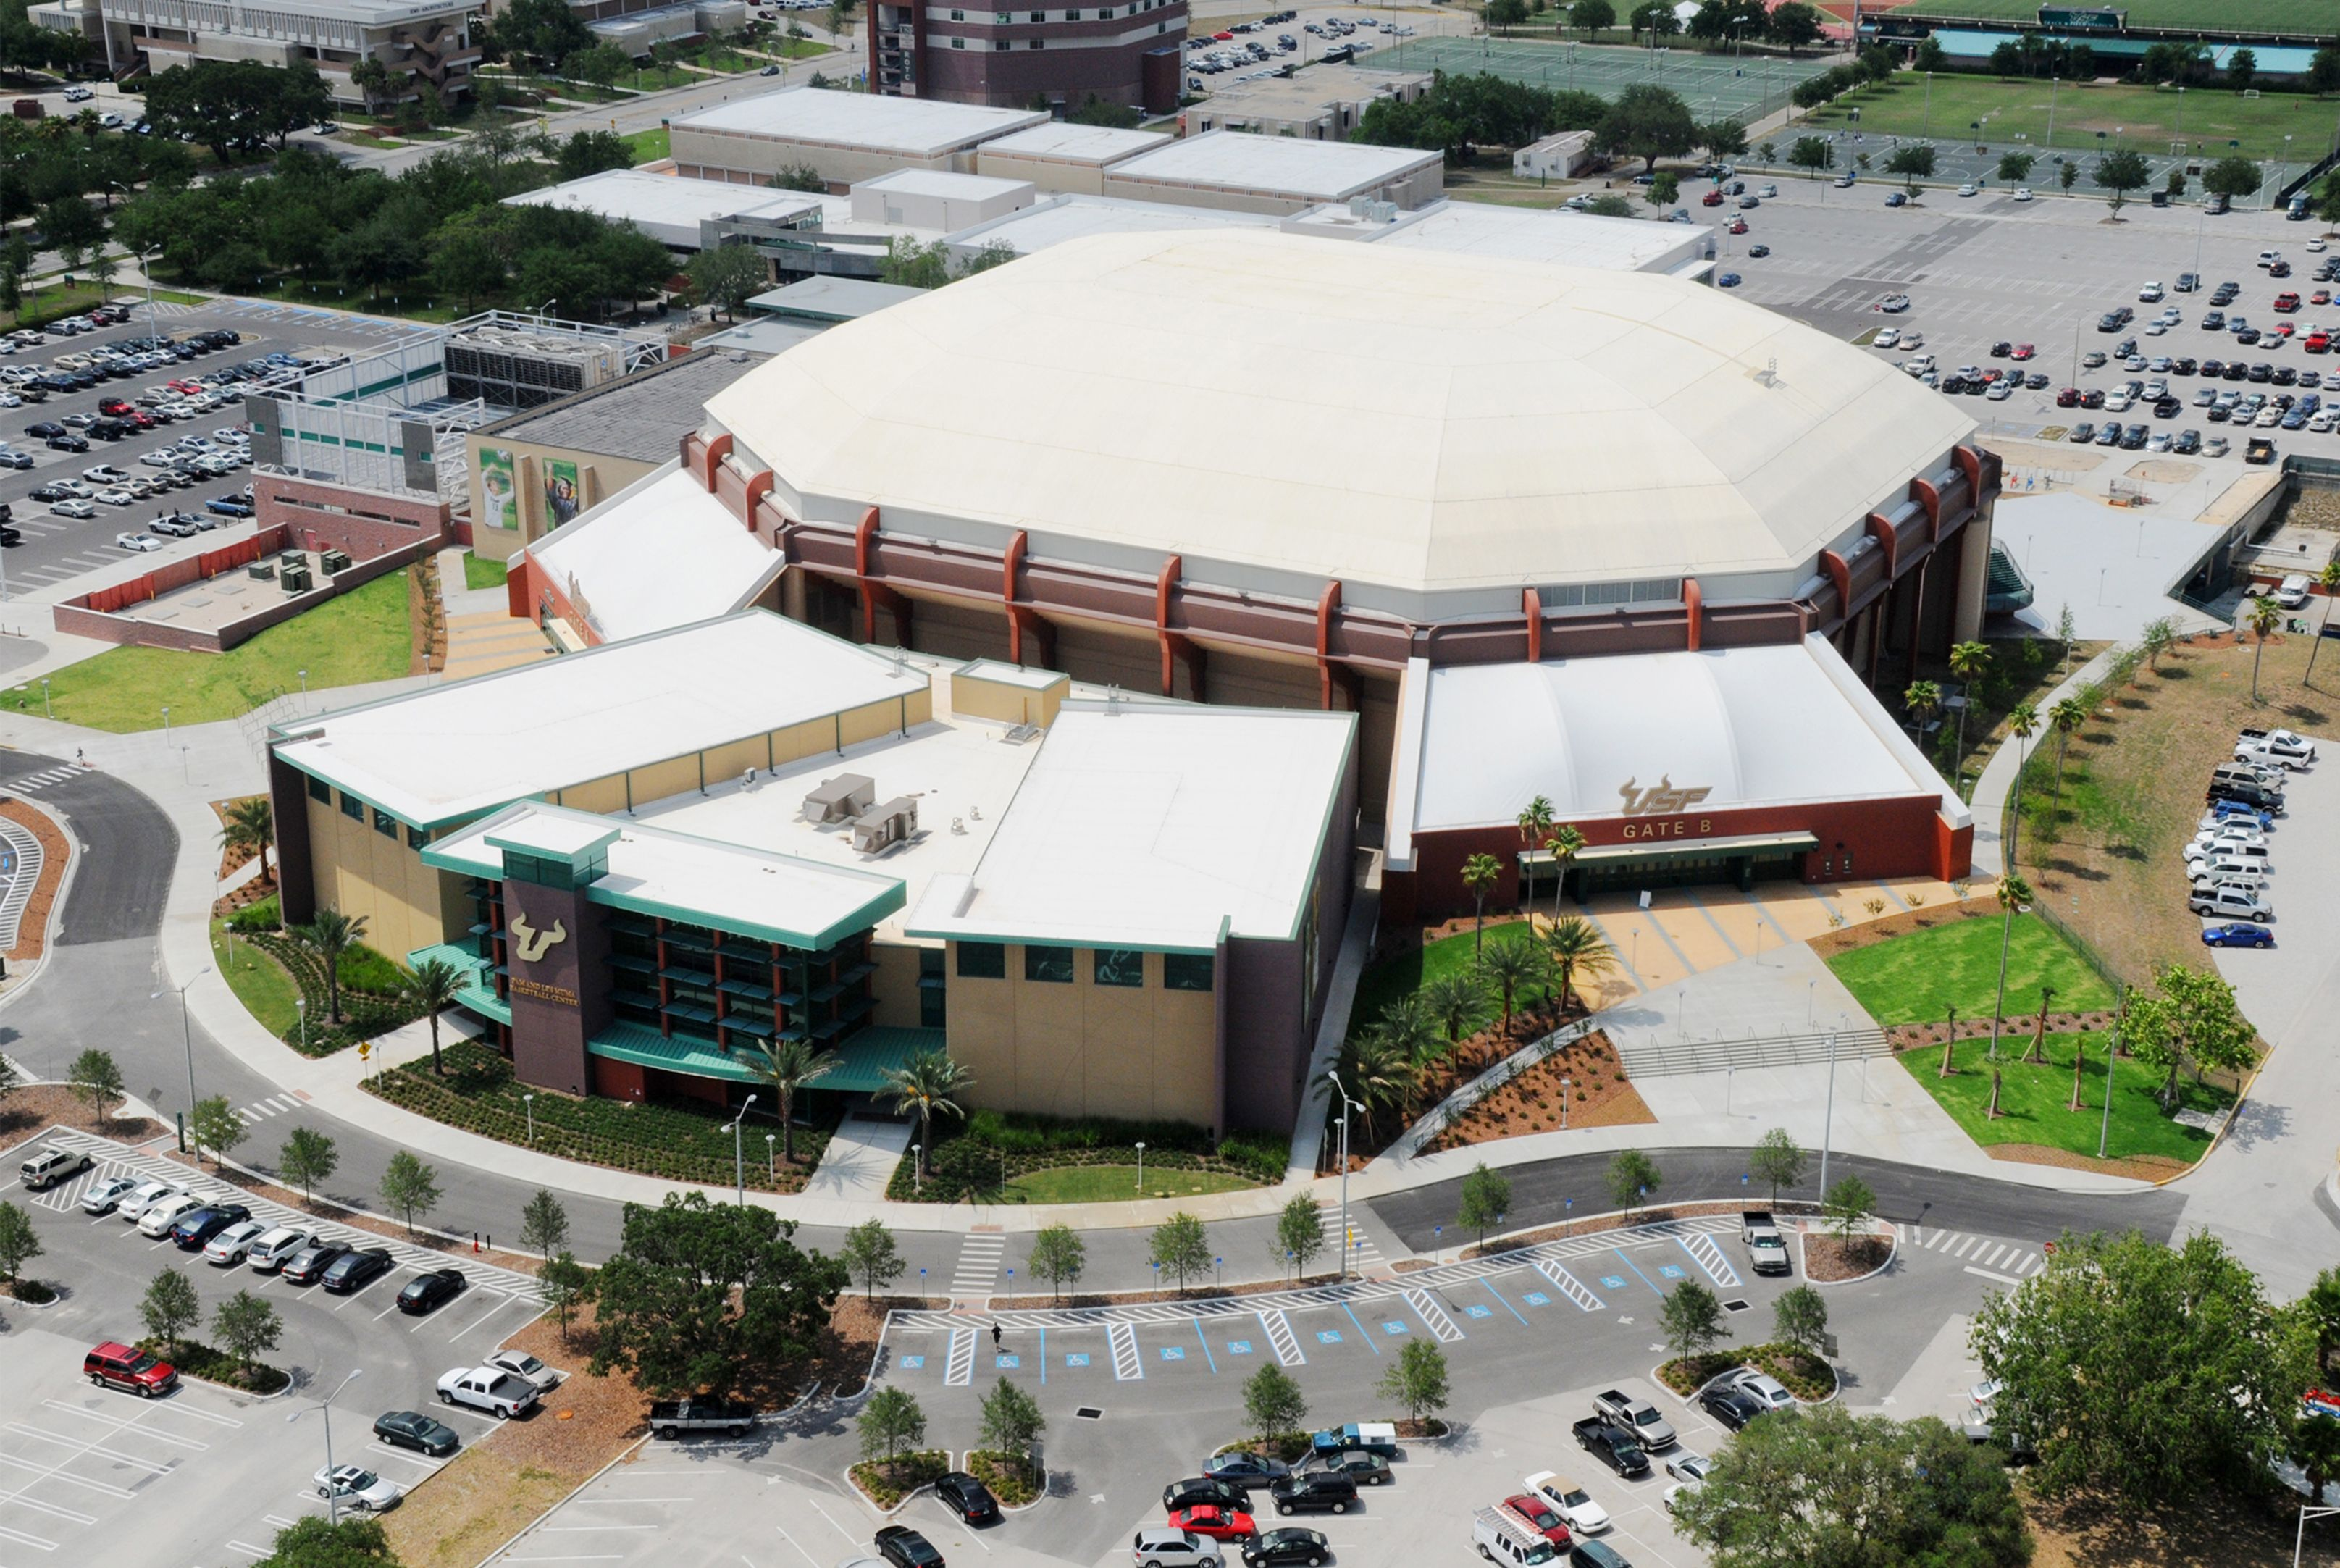 Sun Dome Muma Center Aerial Usf Facilities Pinterest